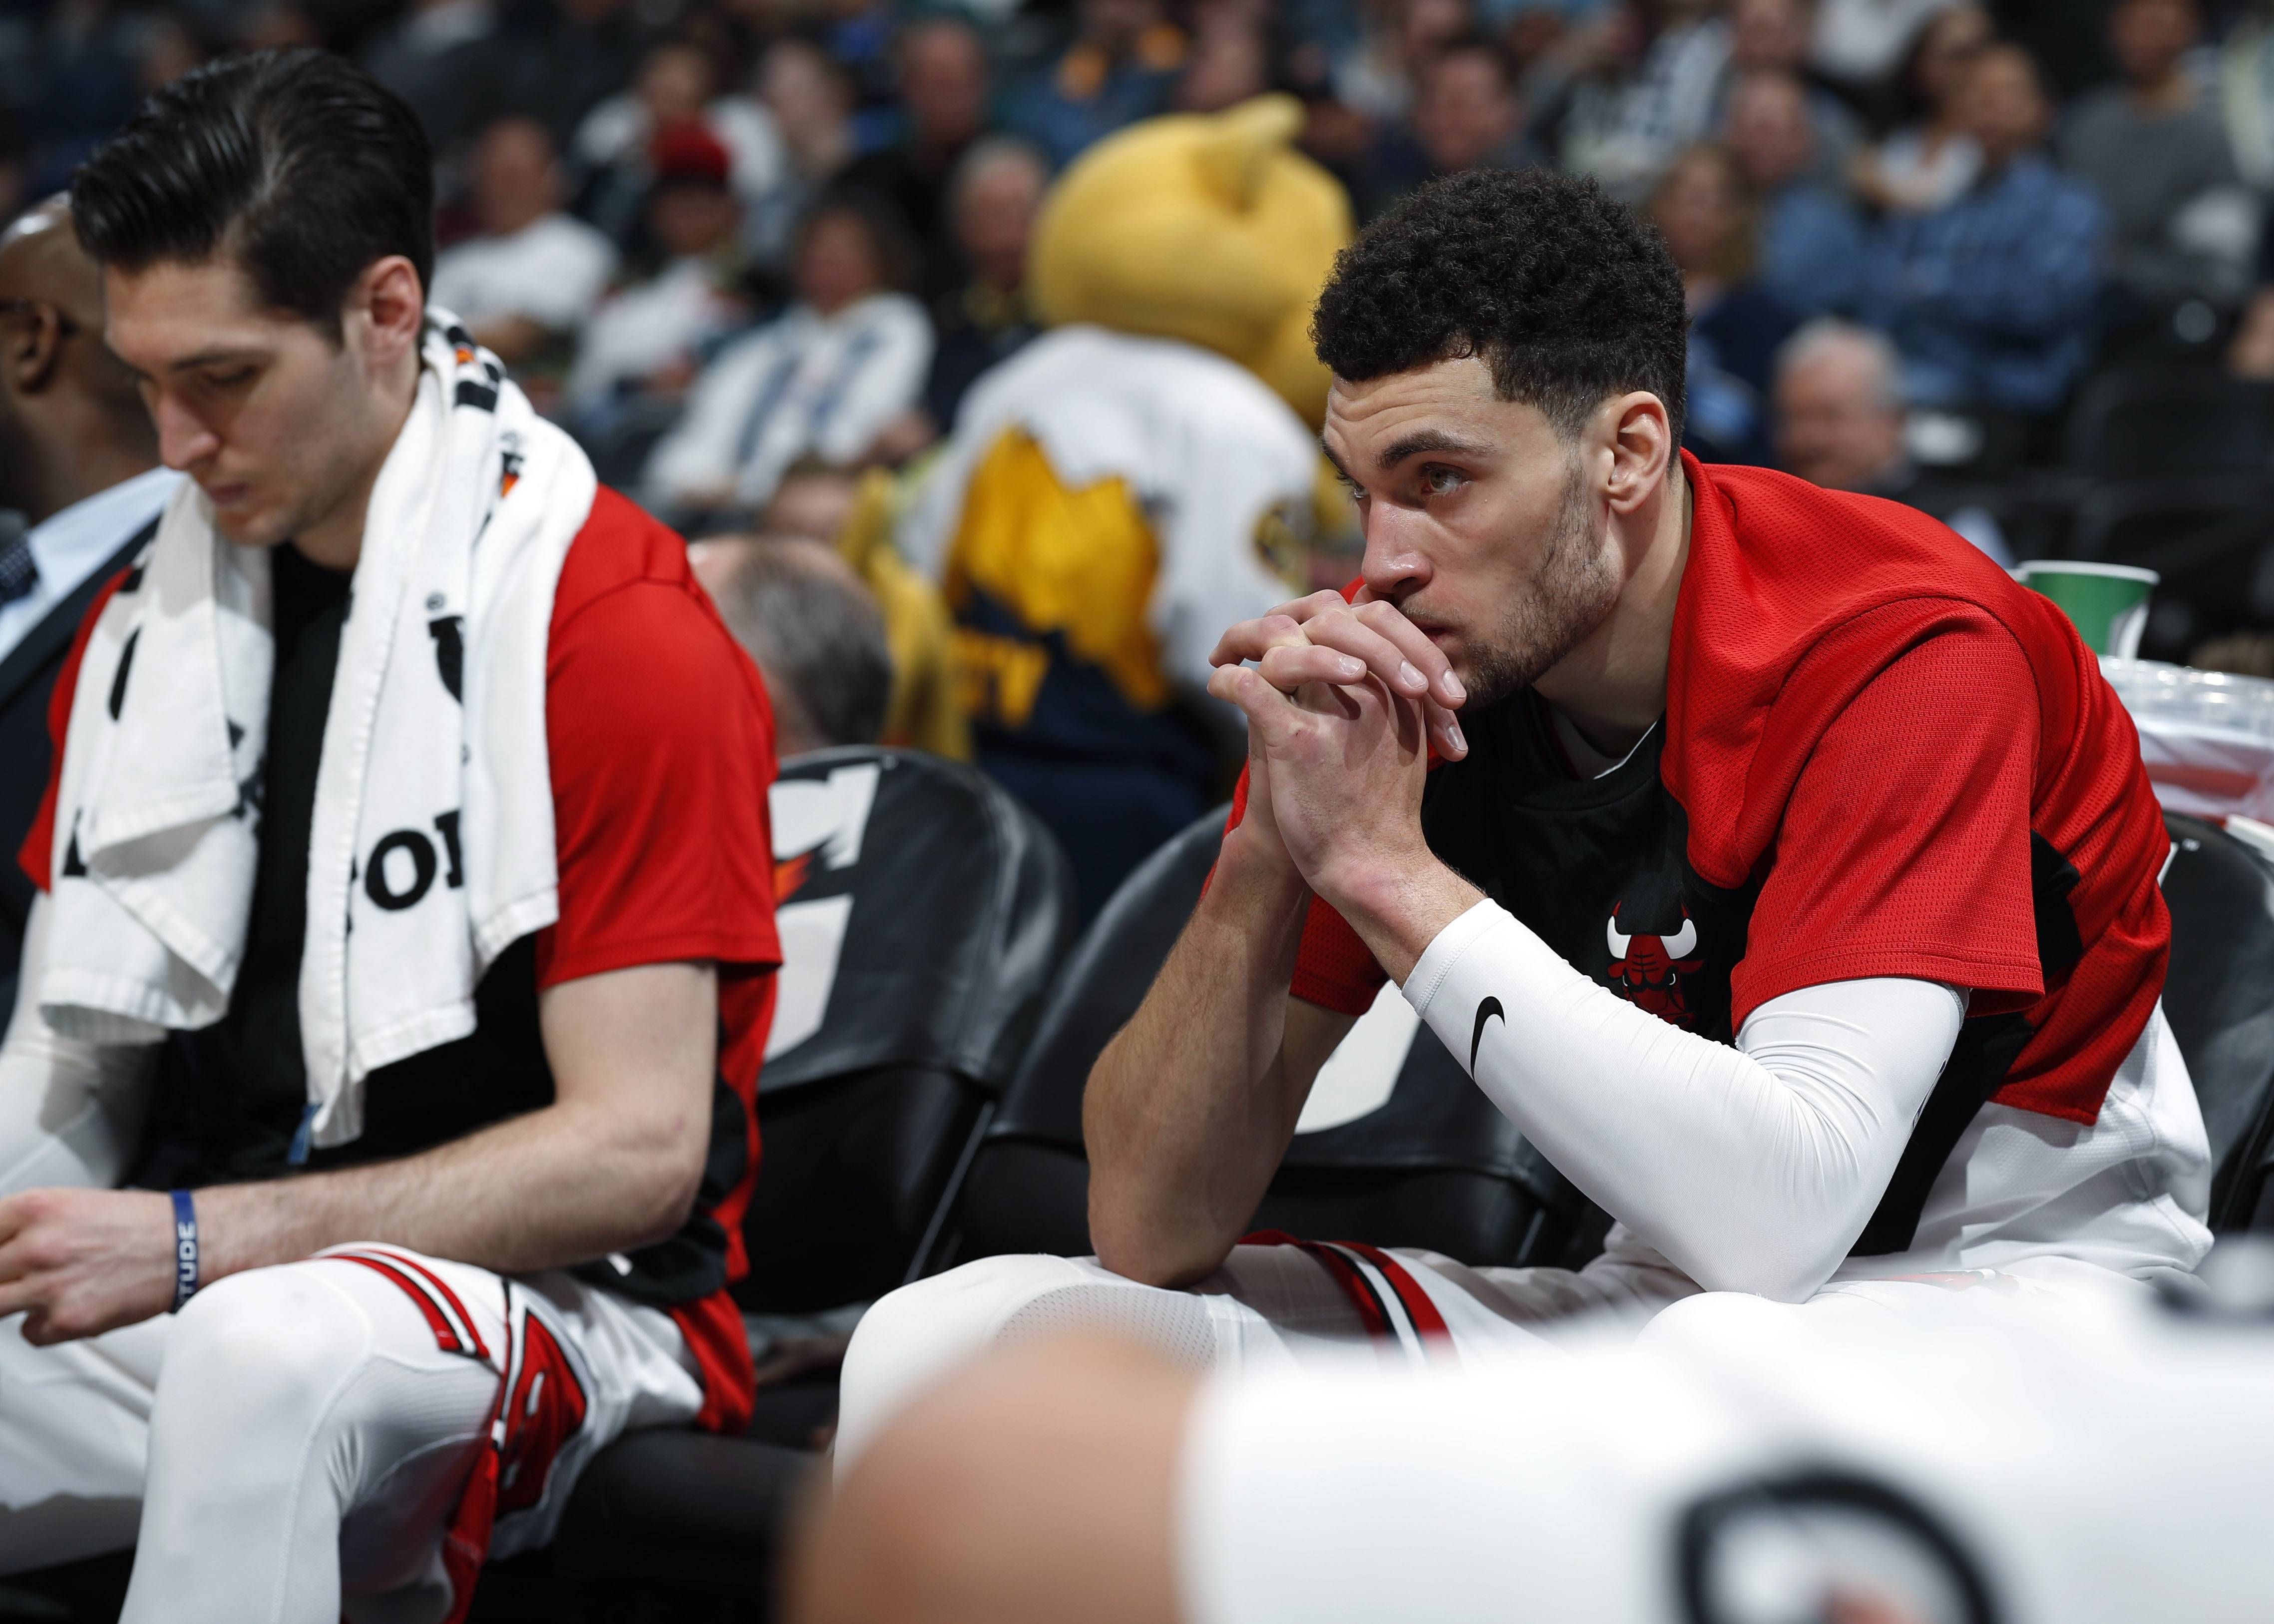 Chicago Bulls guards Zach LaVine, right, and Ryan Arcidiacono sit on the bench as time runs out in the second half of an NBA basketball game against the Denver Nuggets, Thursday, Jan. 17, 2019, in Denver. The Nuggets won 135-105.